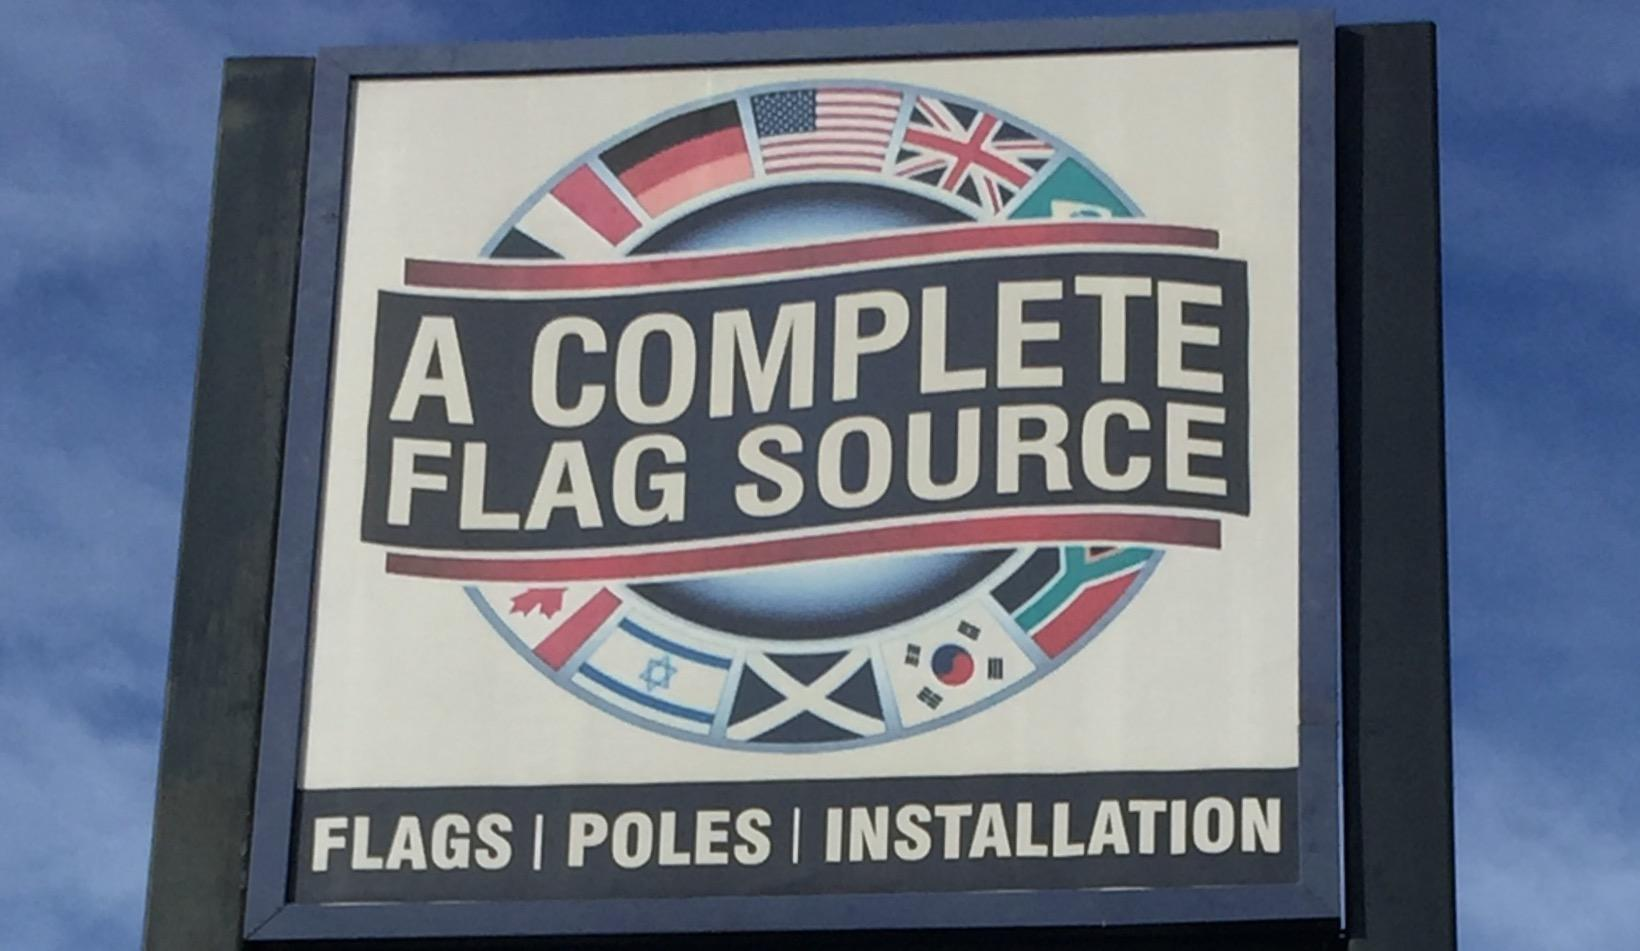 A Complete Flag Source